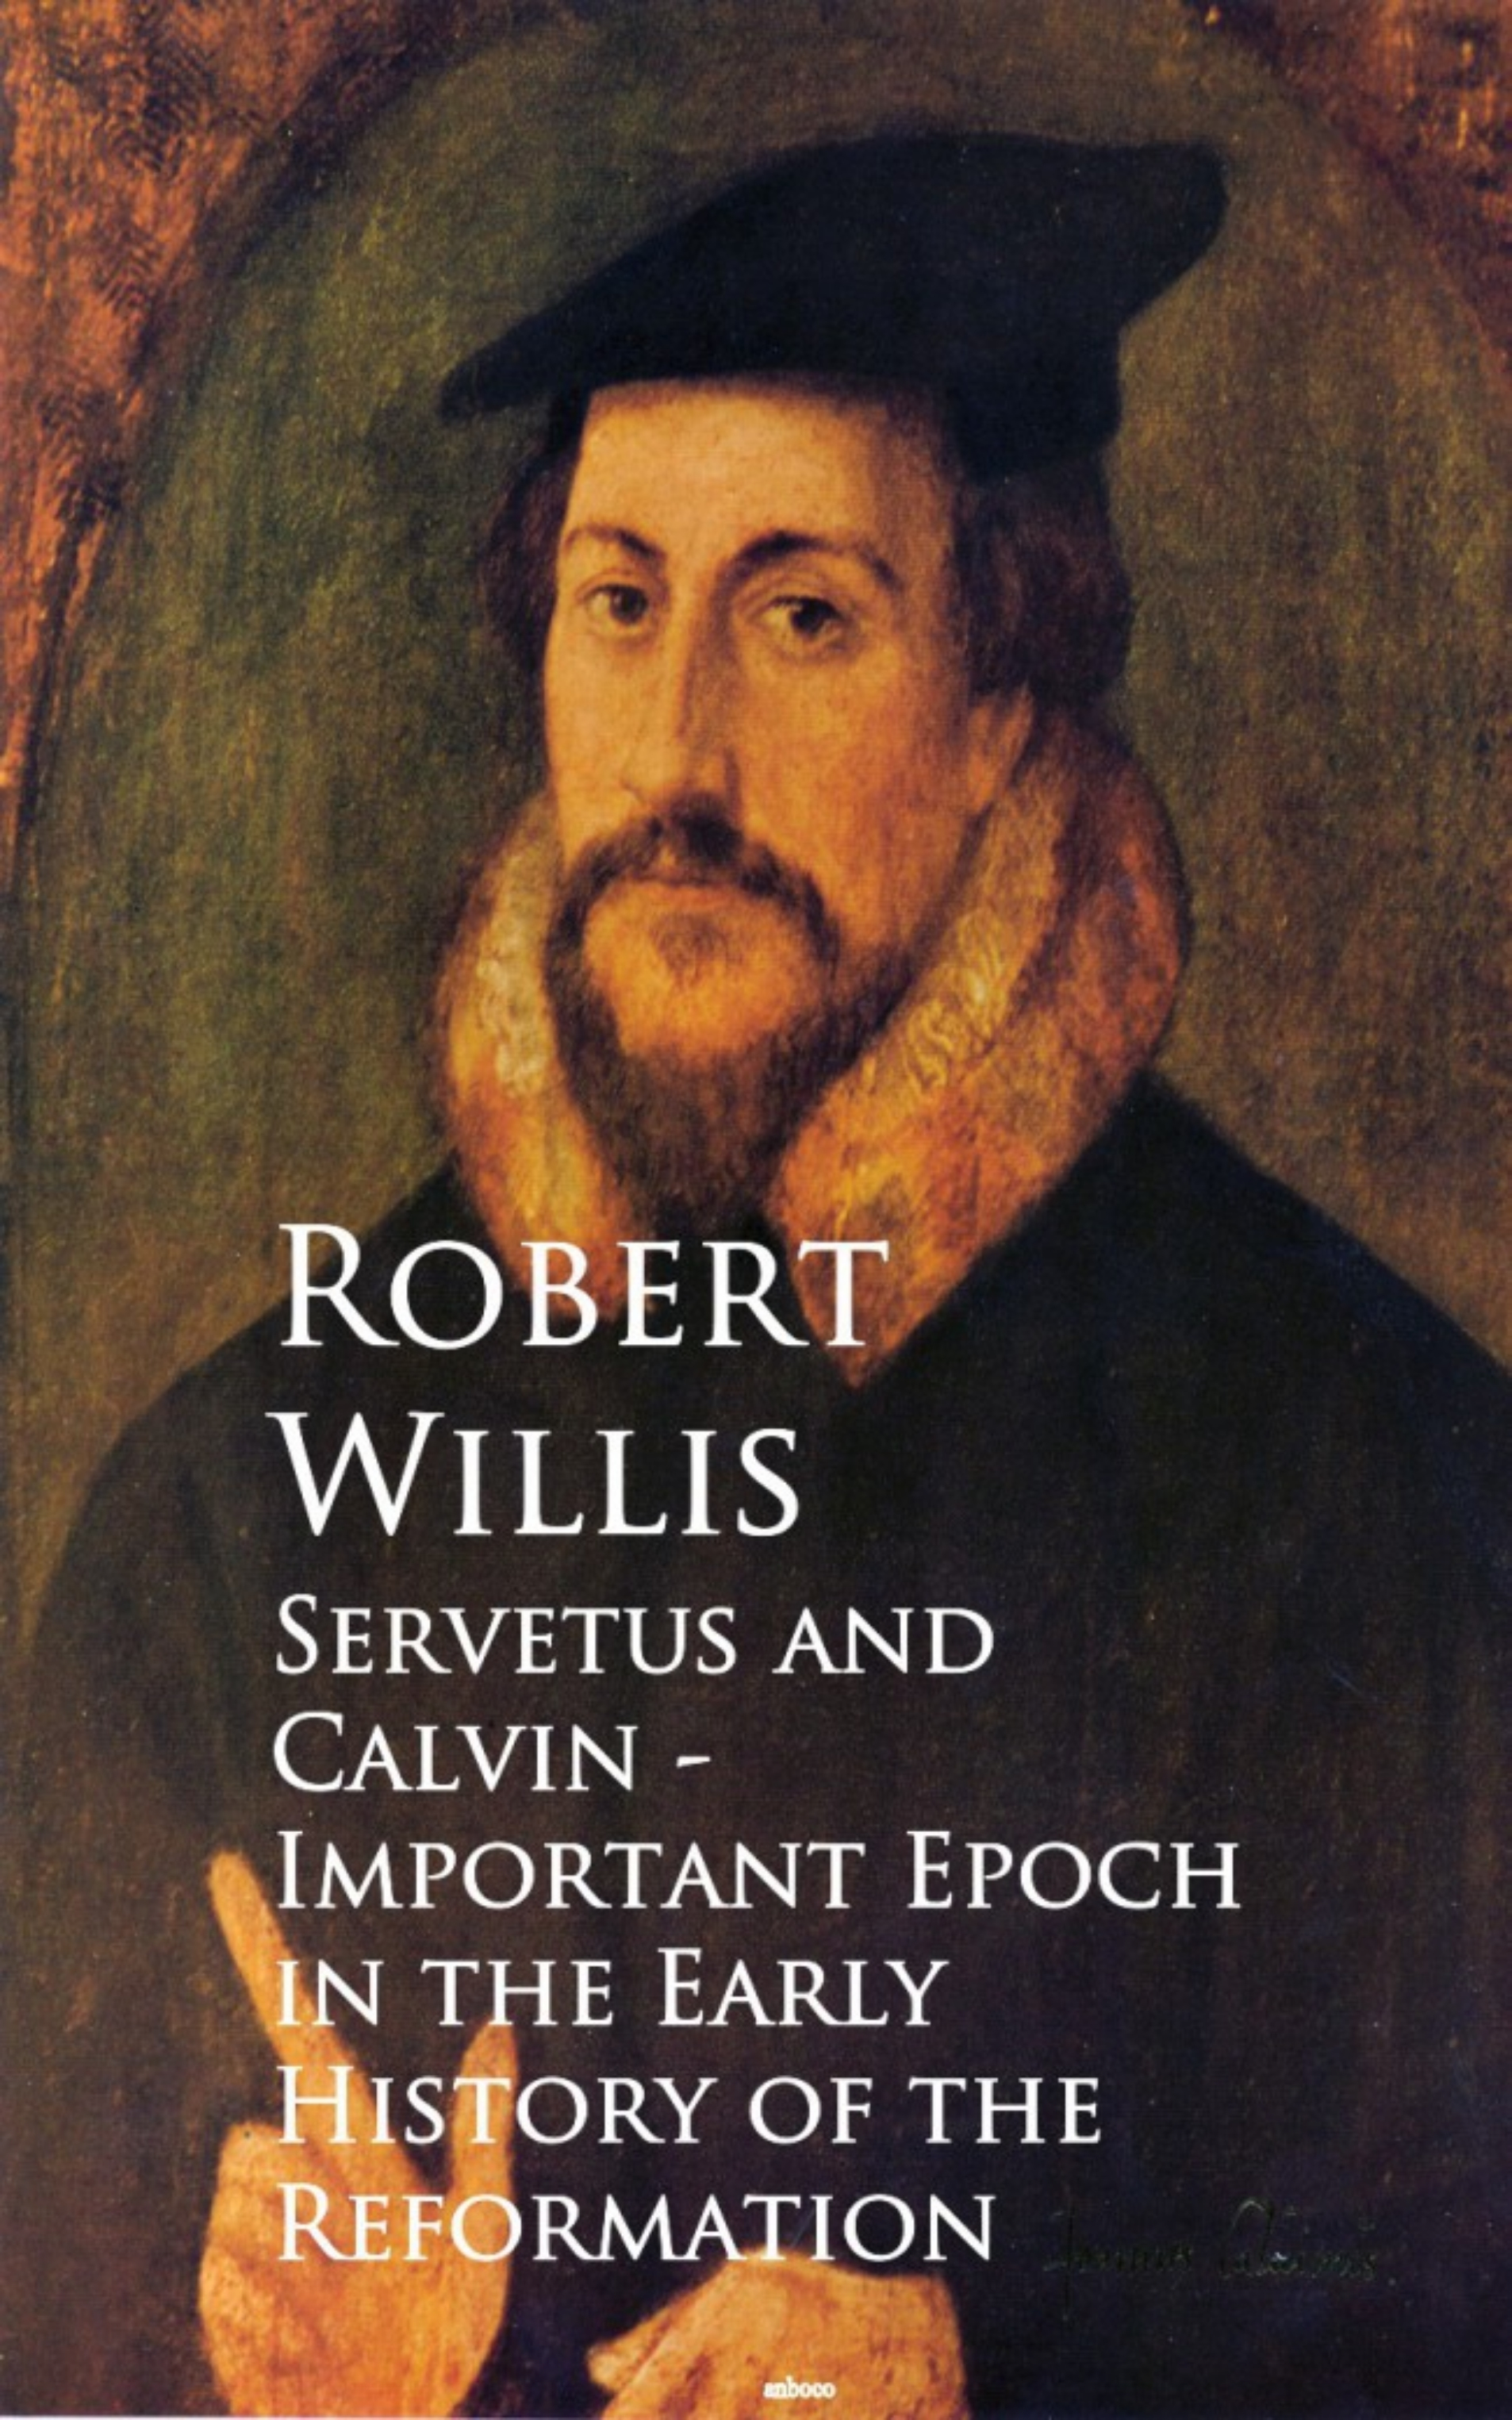 Robert Willis Servetus and Calvin - Important Epoch in the Early History of the Reformation emerson willis george the treasure of hidden valley